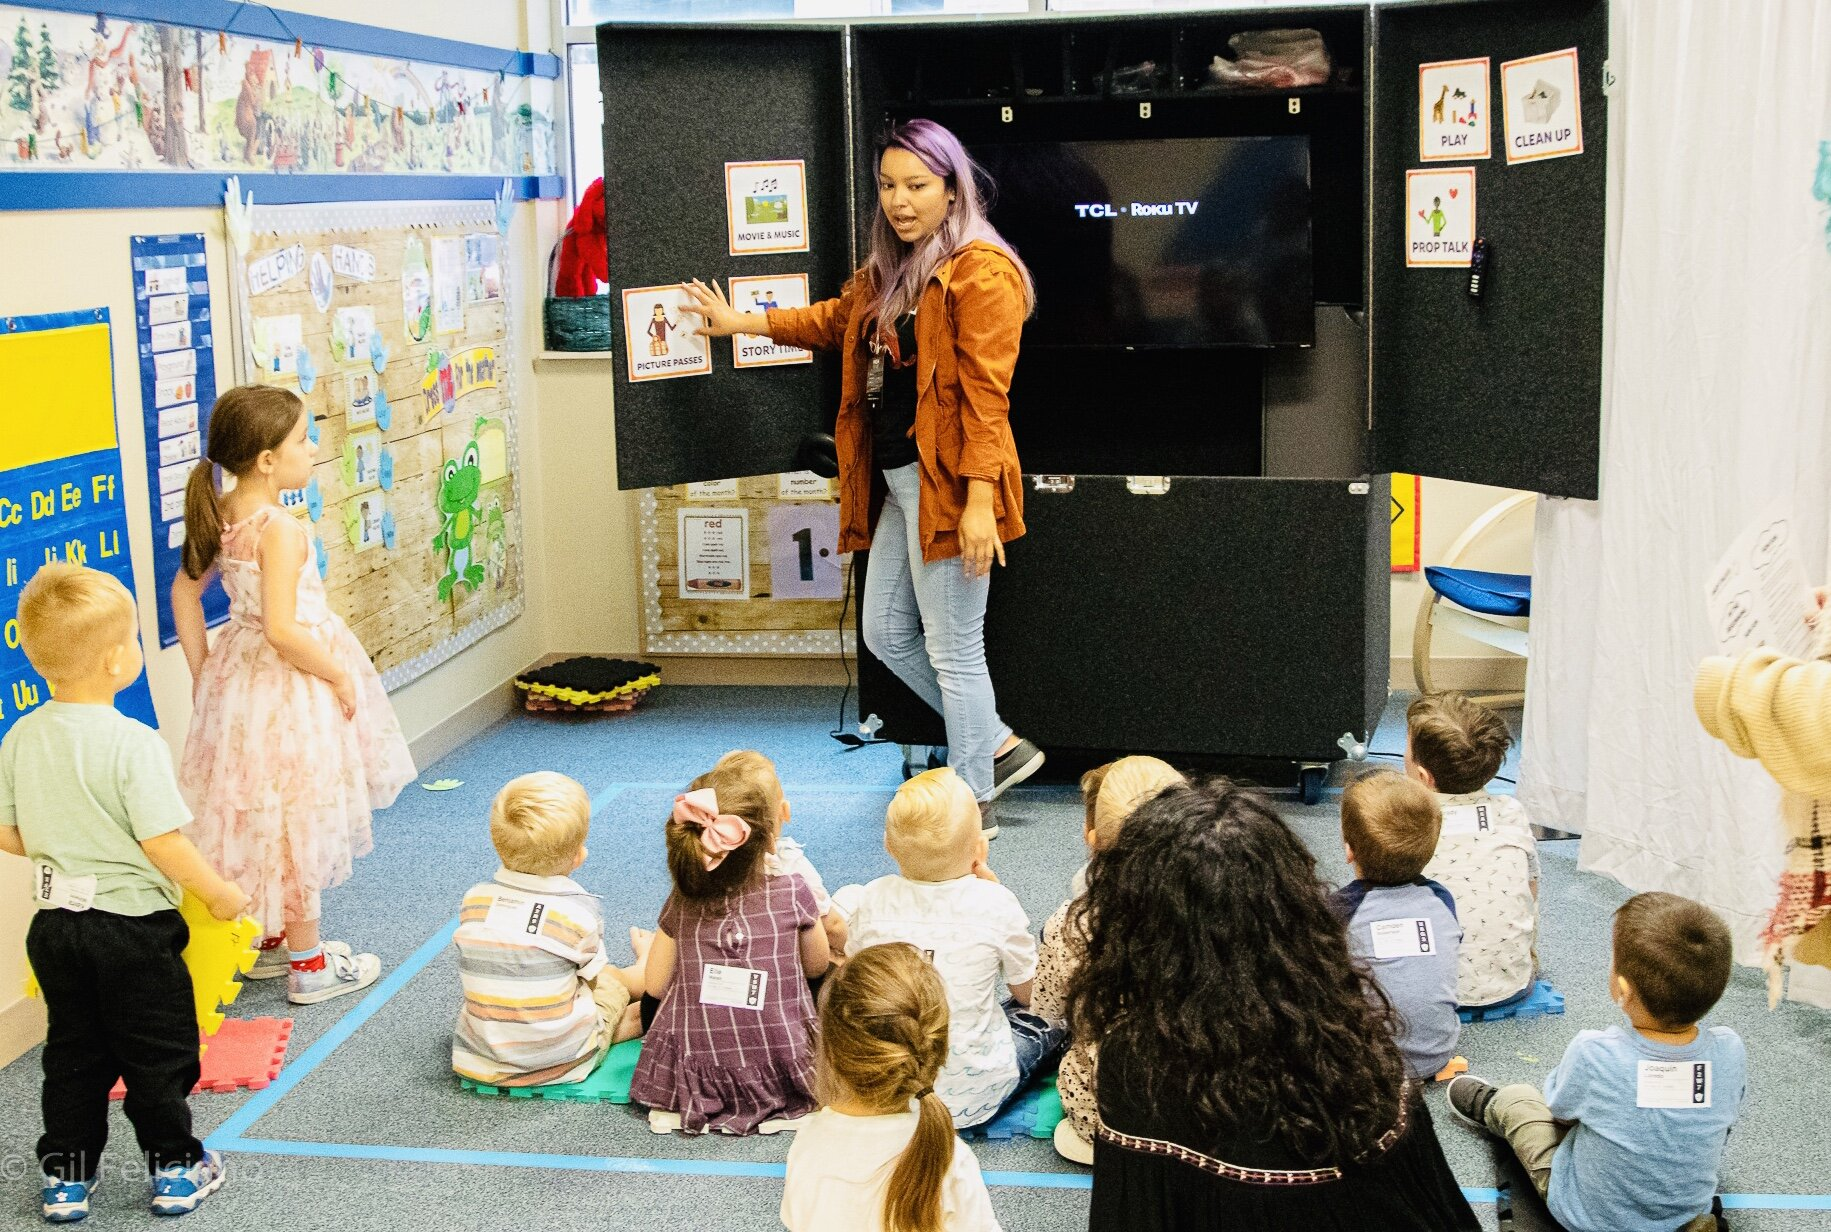 Kids Crew - We are raising up the next Spirit-filled generation! We have nursery, preschool, and elementary classes. The Kids Crew is always looking for friendly small group leaders, check-in helpers, hosts, and teachers!